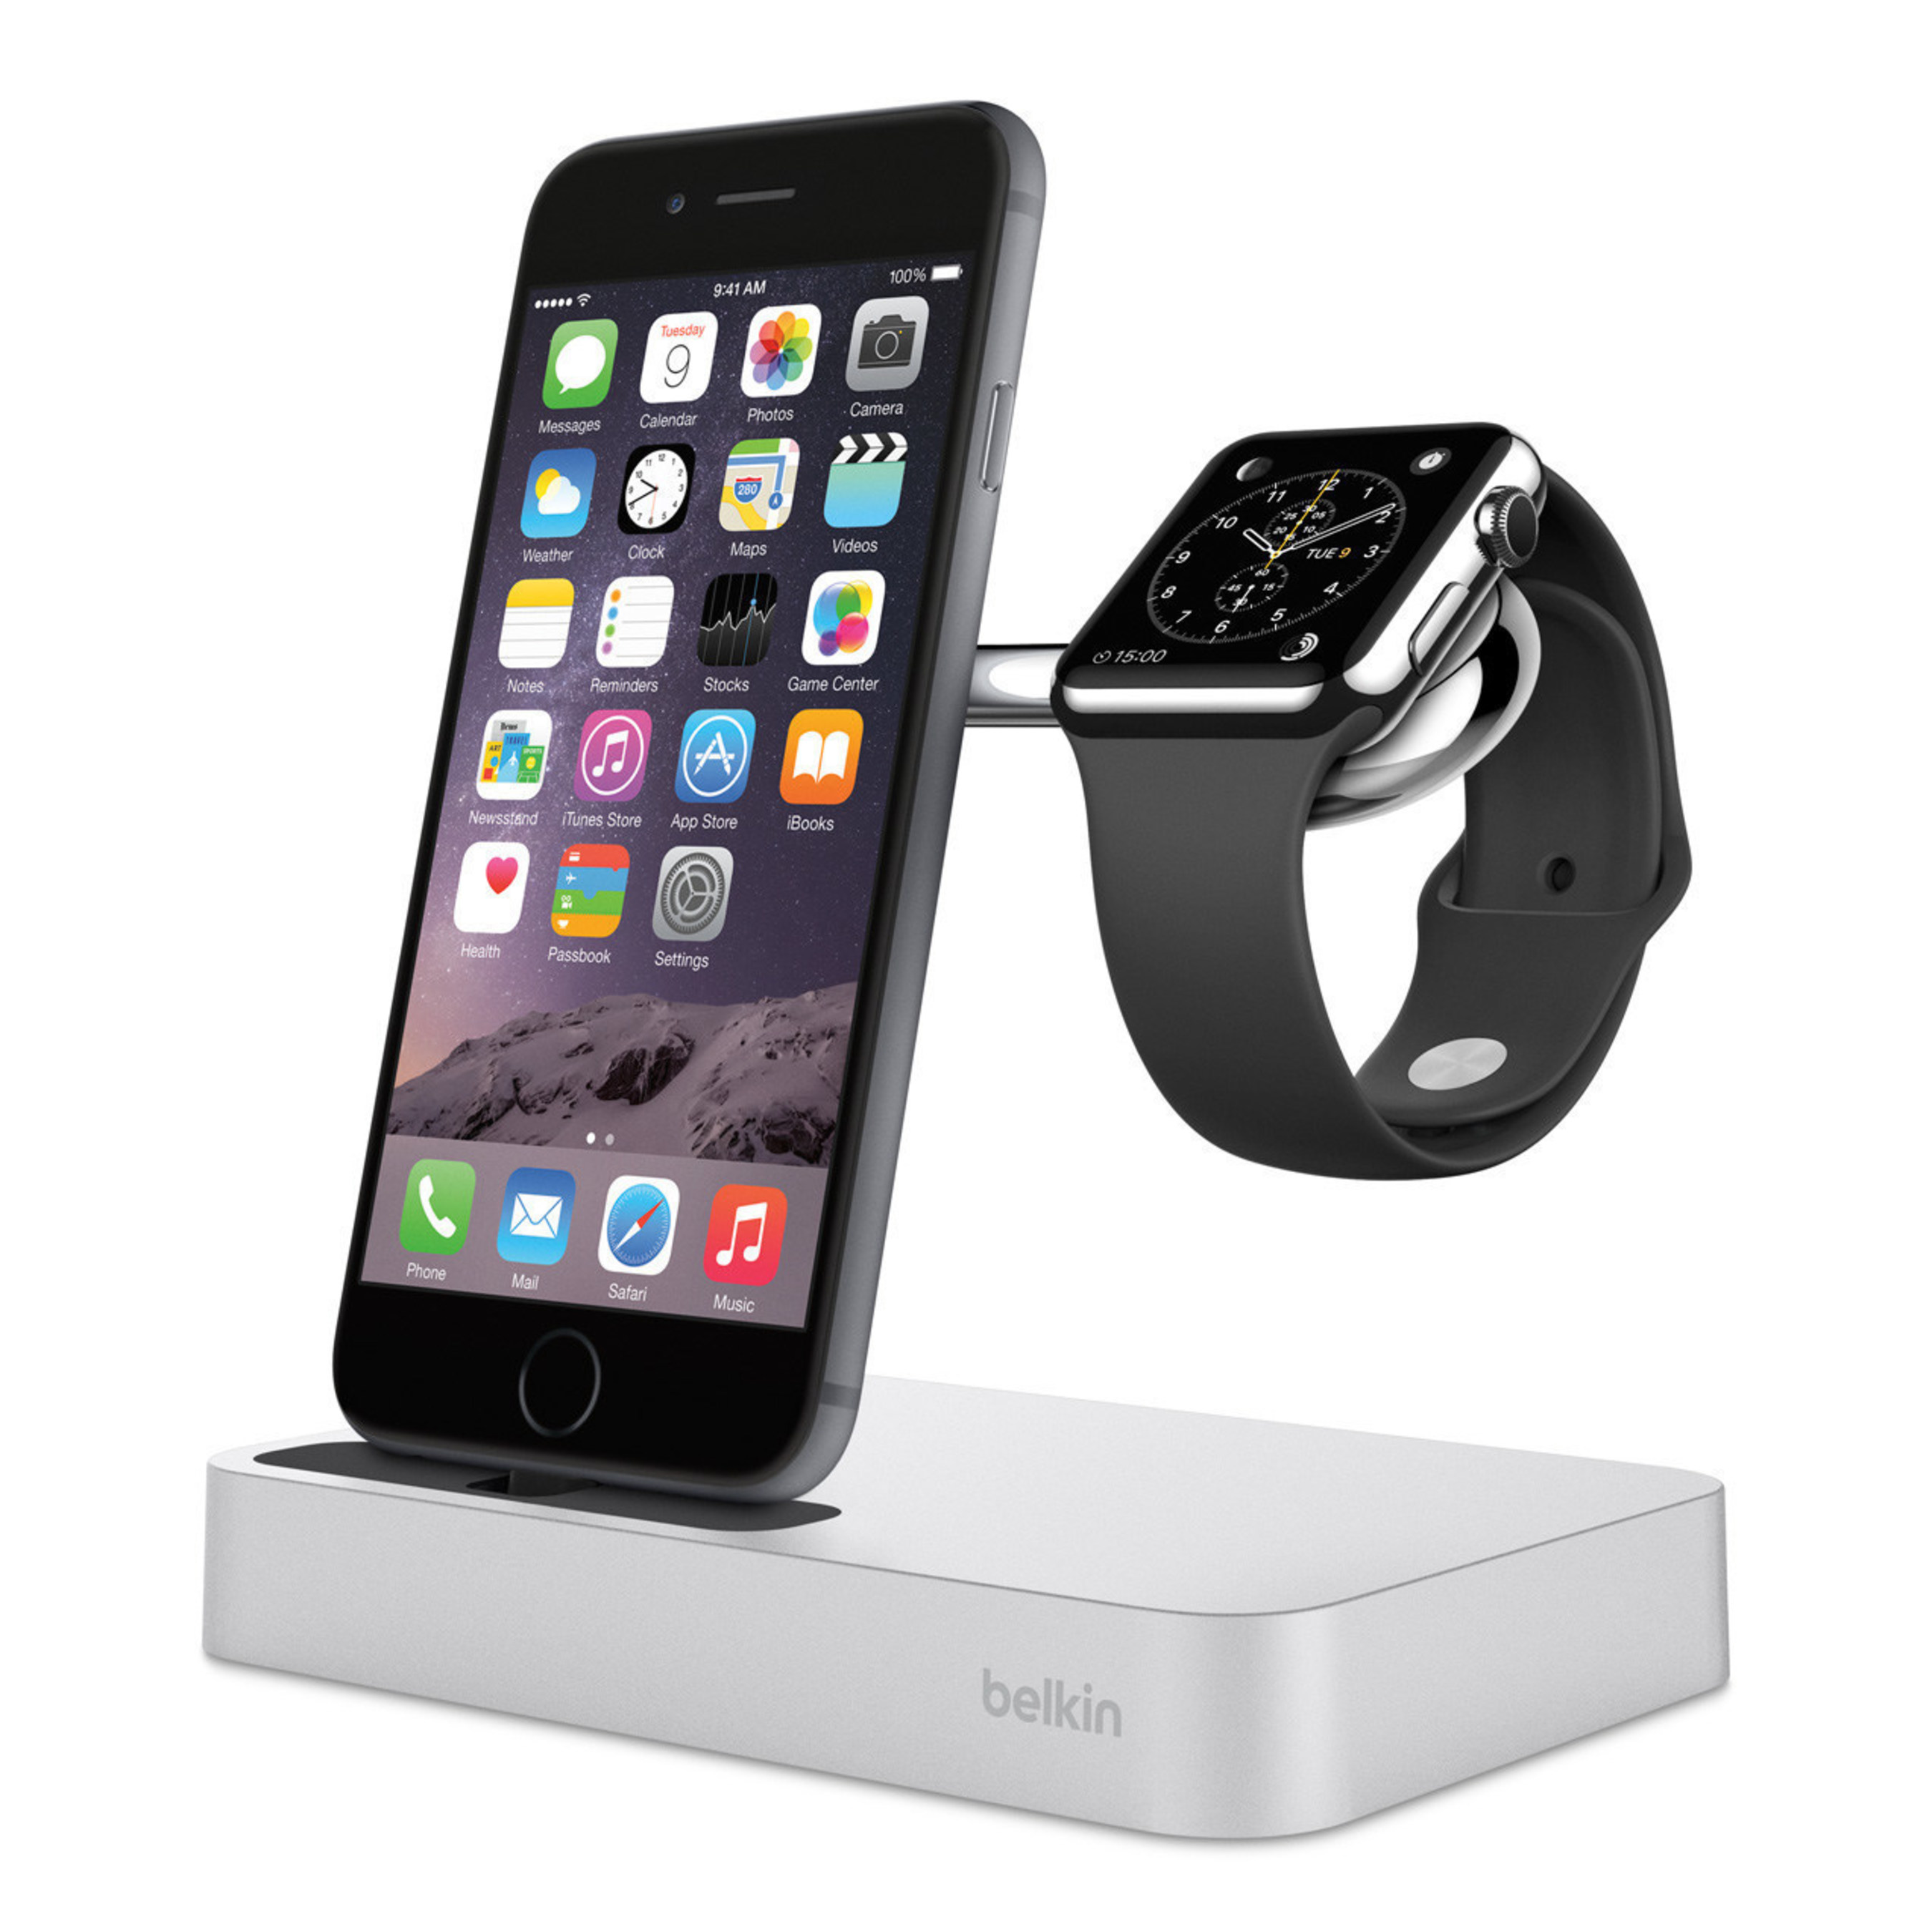 Belkin Introduces Charge Dock with Integrated Charging for the Apple Watch + iPhone